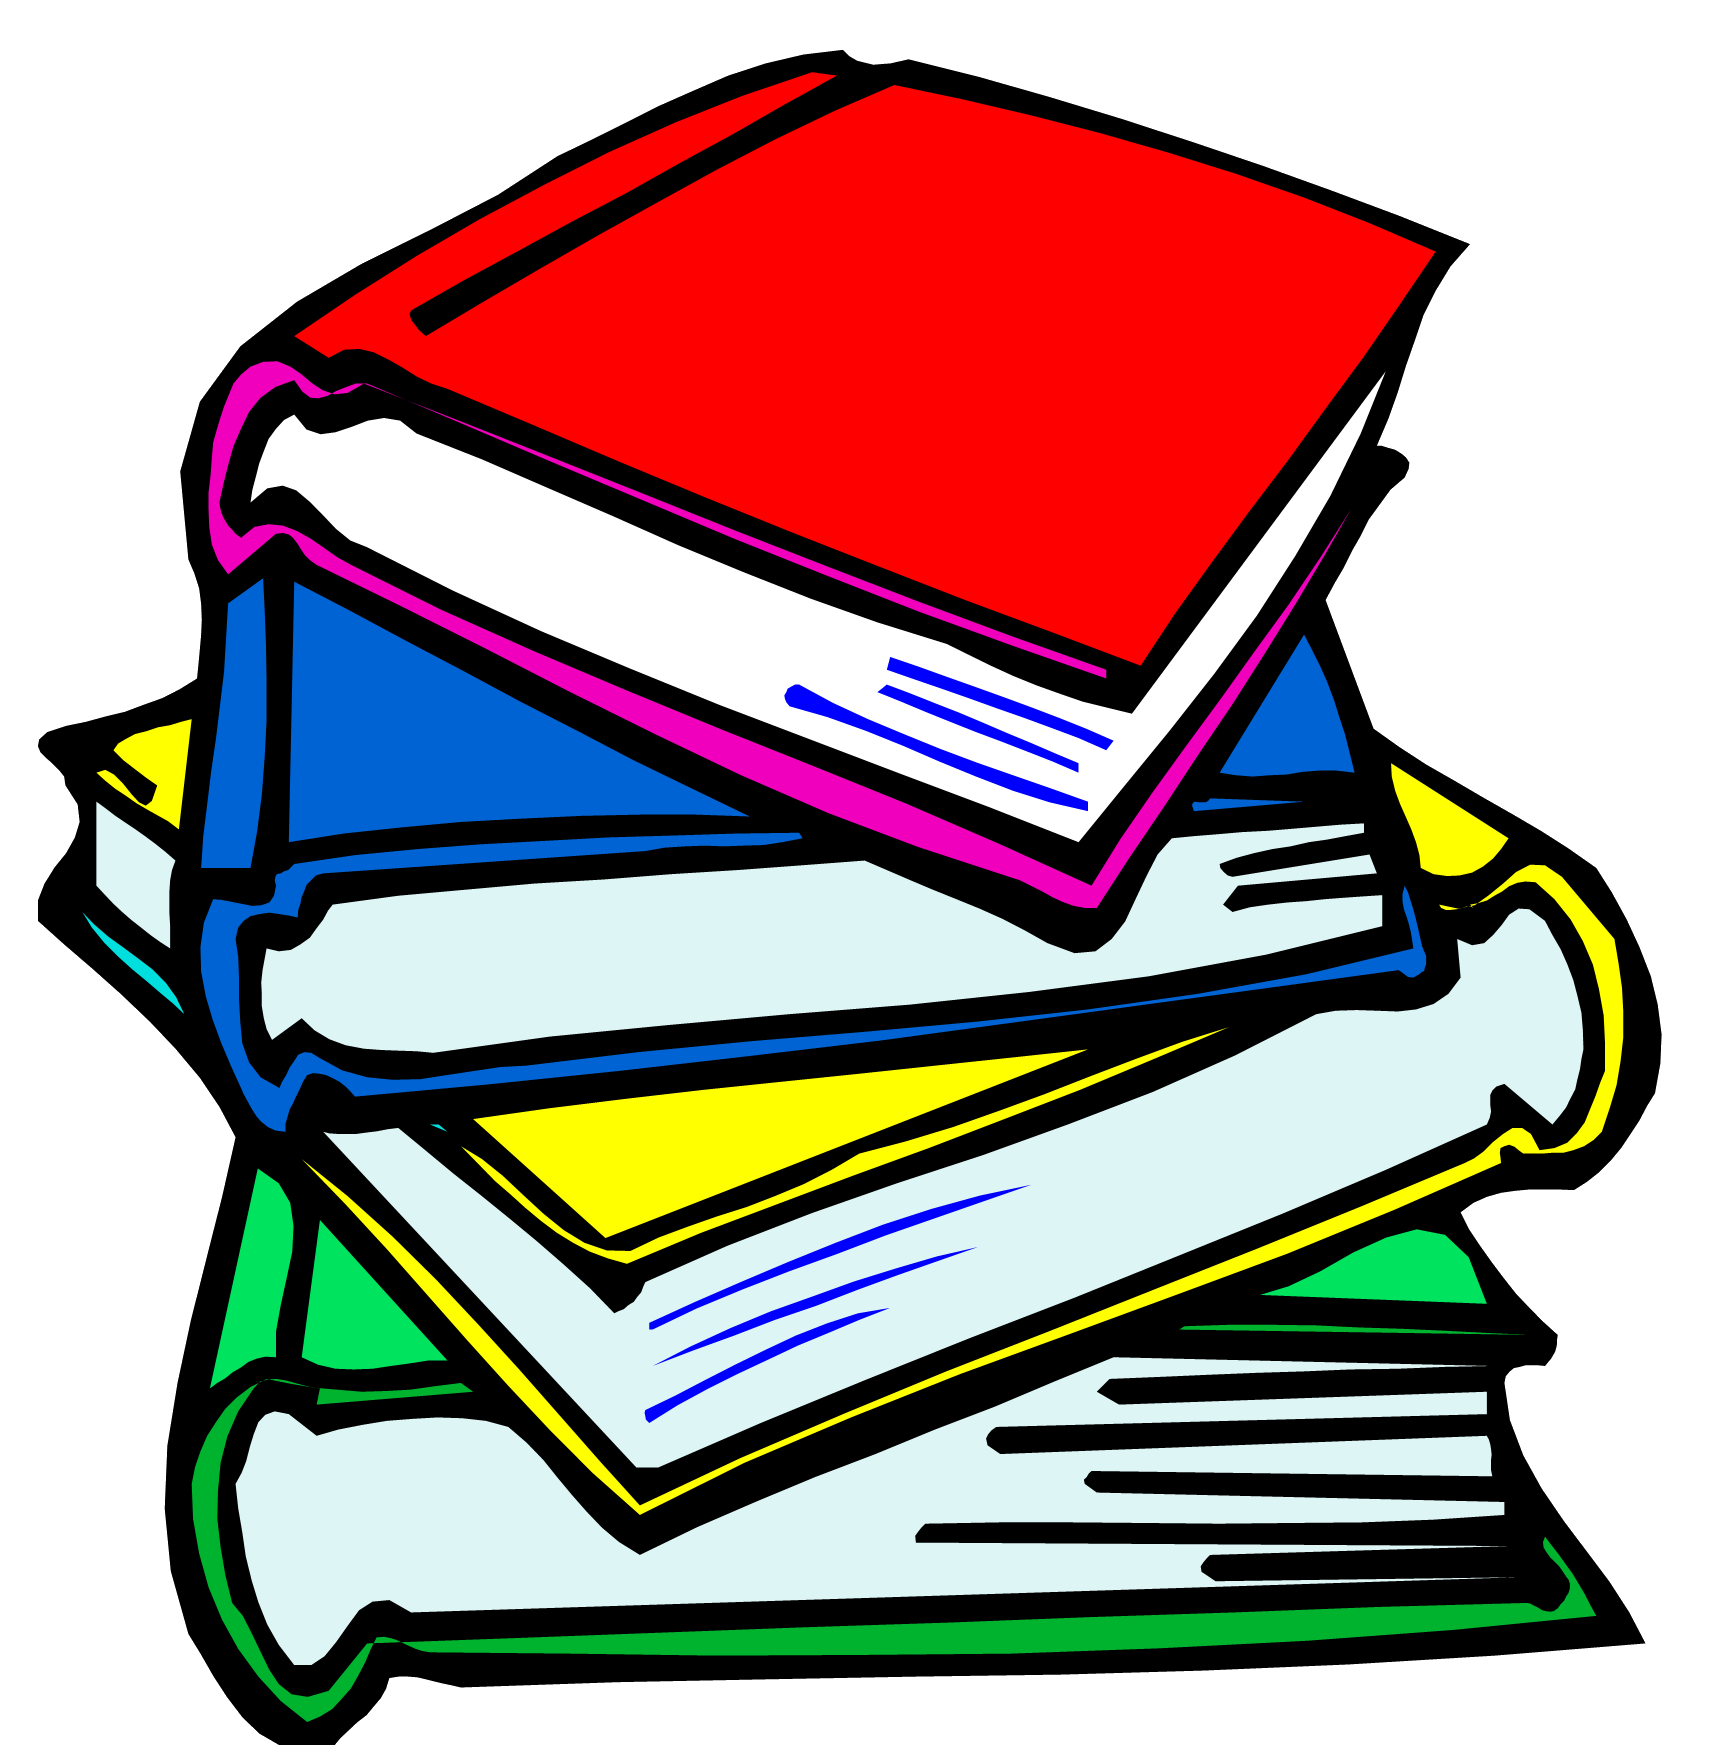 Book cliparts free png freeuse Book Free Schoolbooks Cliparts Clip Art On Transparent Png - AZPng png freeuse